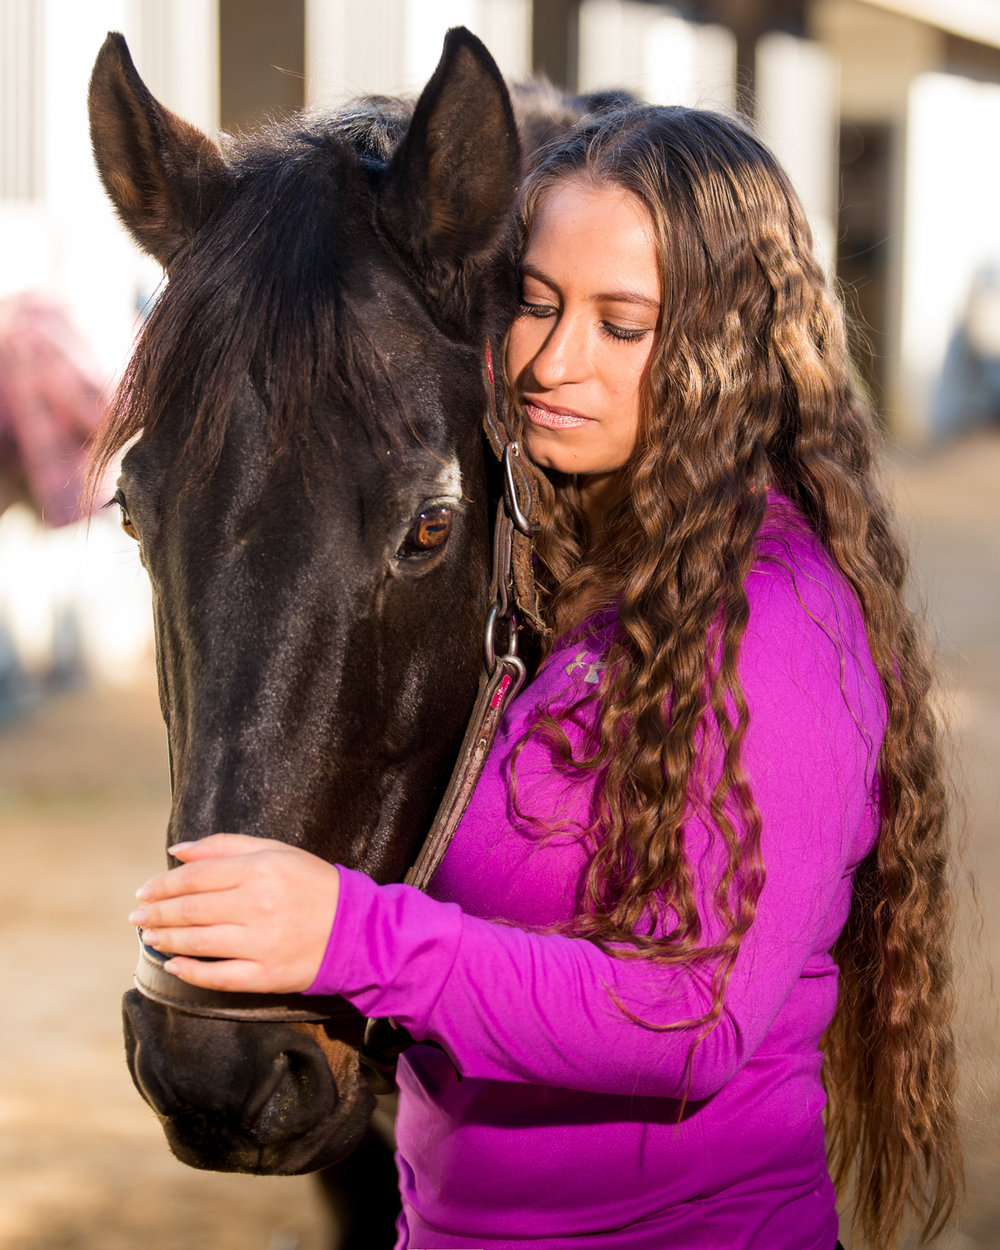 2016_December_20-Sabina_Grusnick_PV_Stables-35018-Edit.jpg